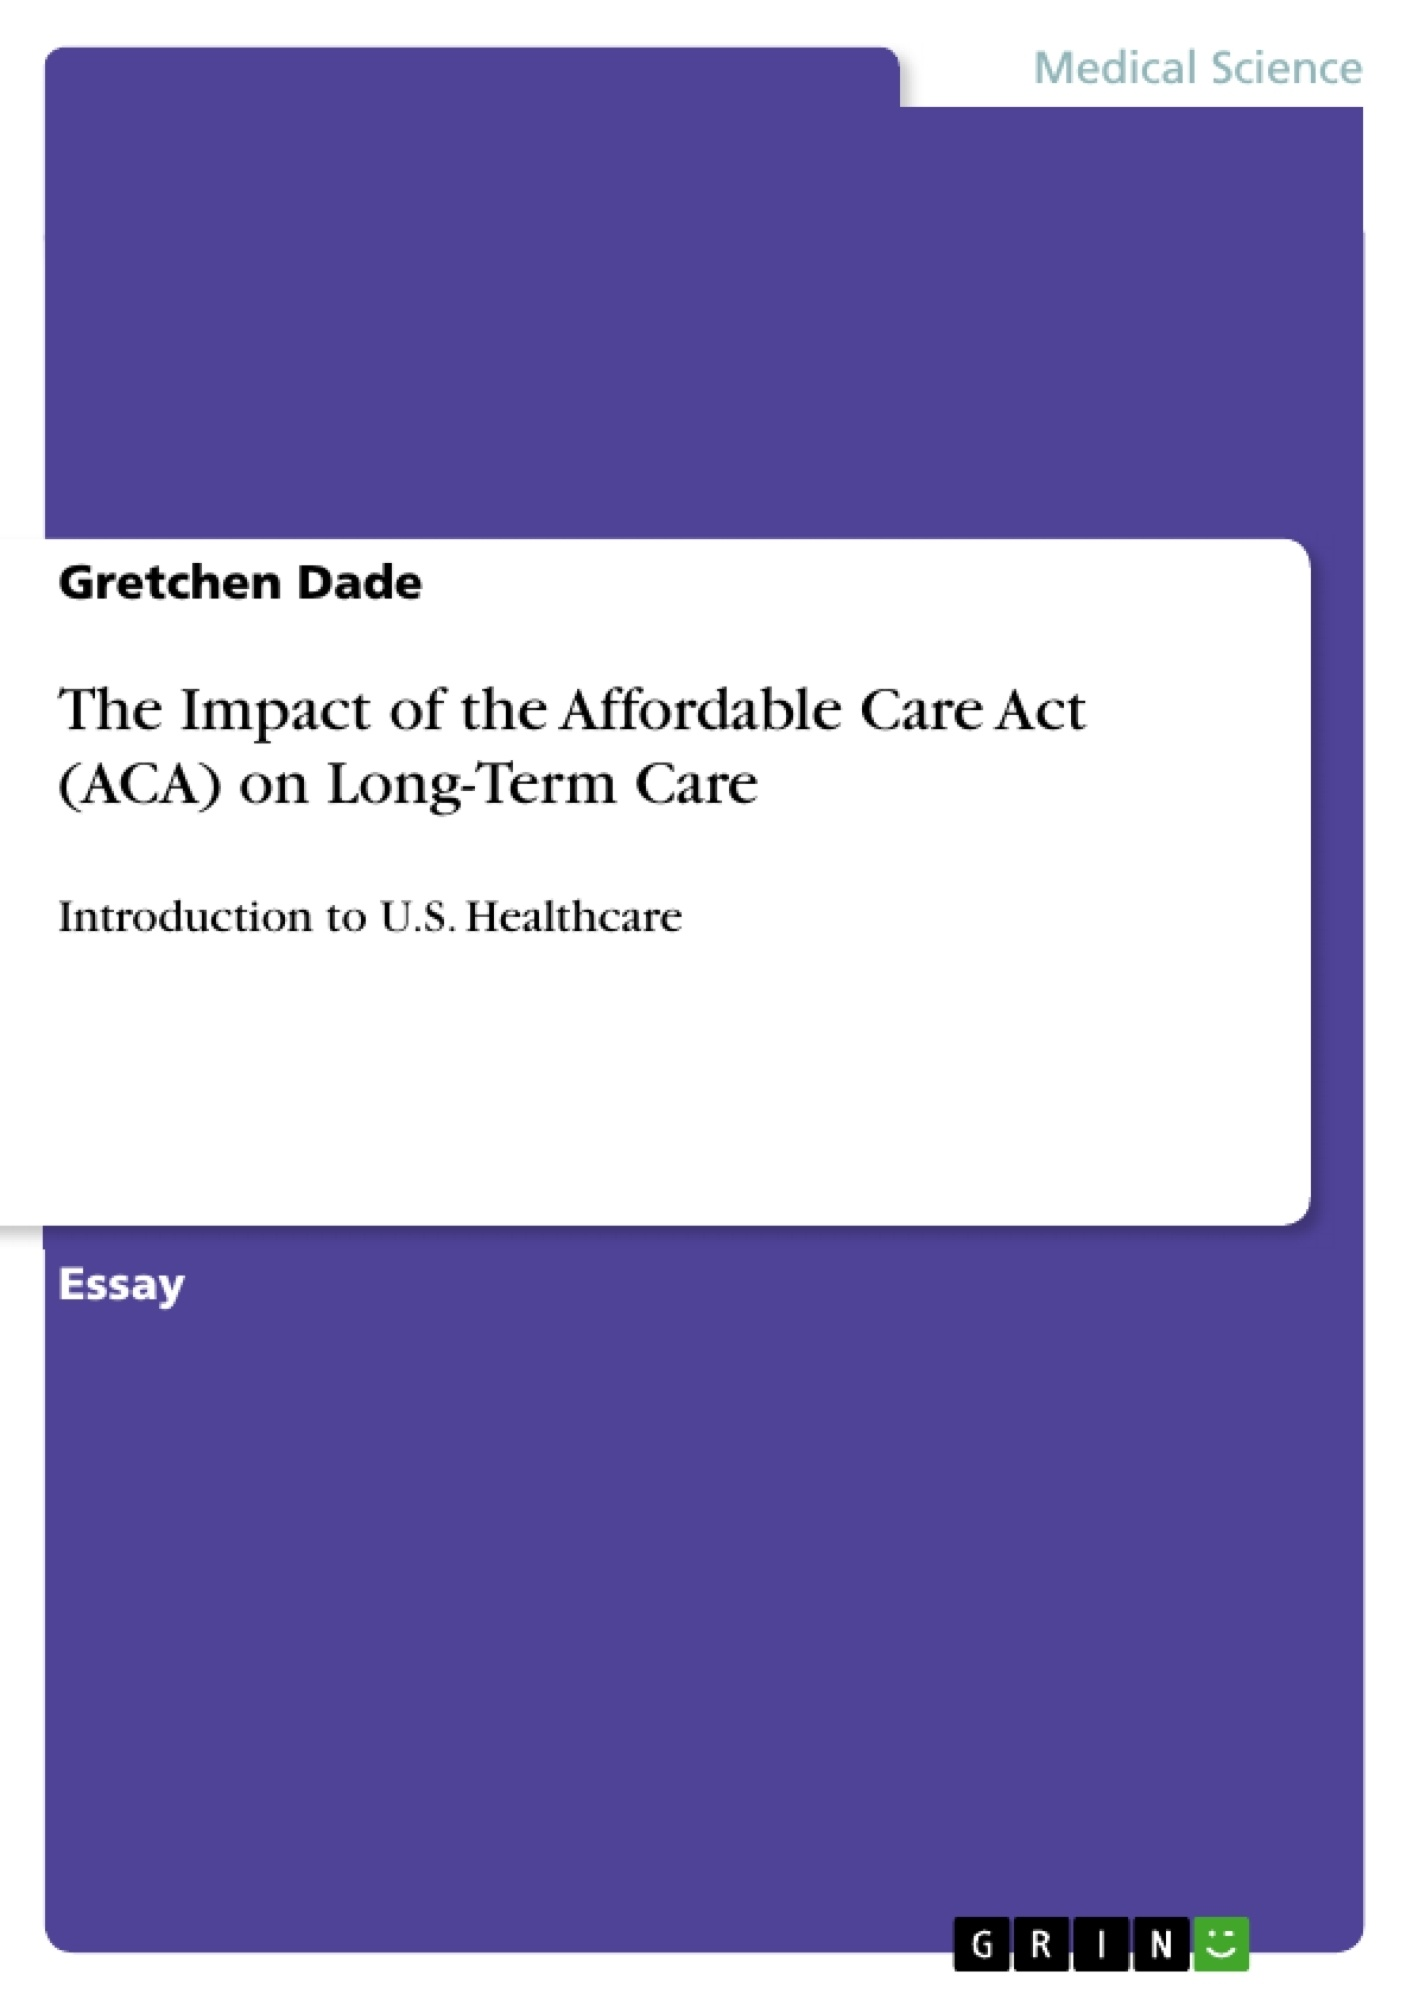 Title: The Impact of the Affordable Care Act (ACA) on Long-Term Care